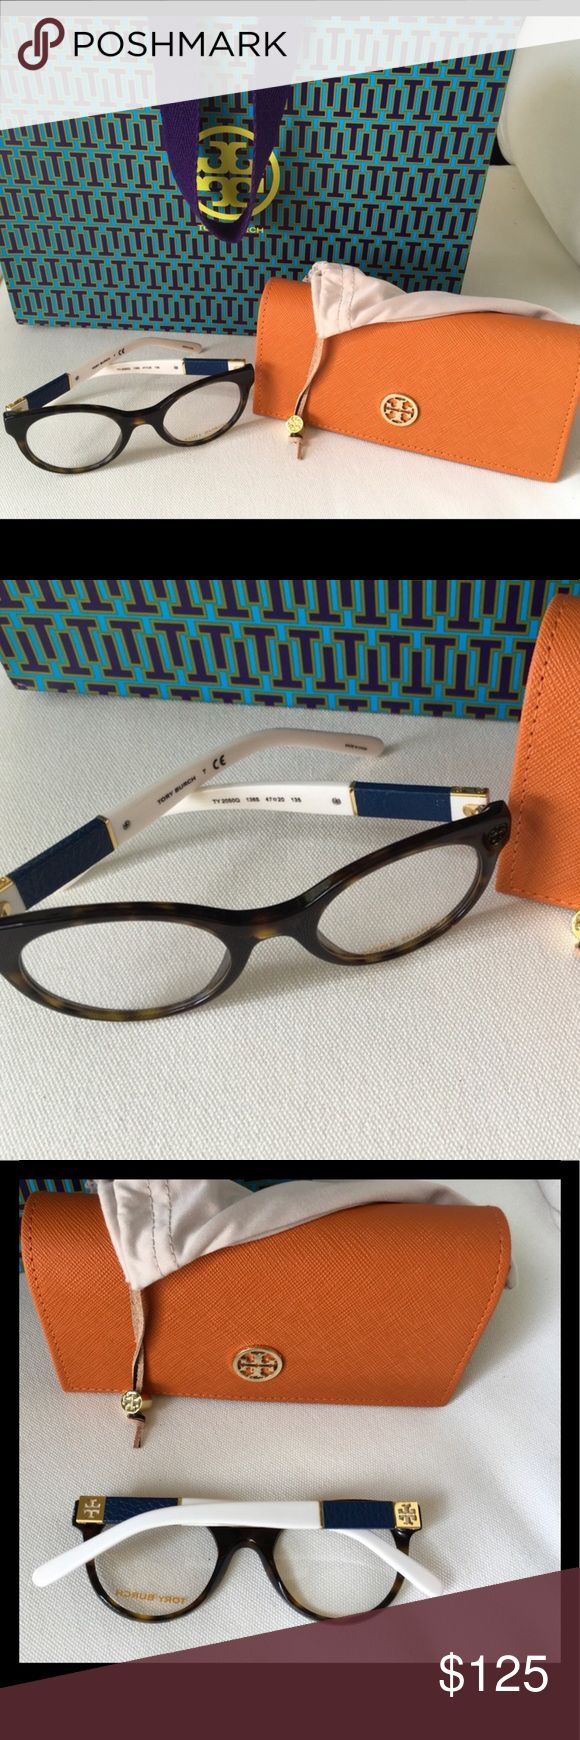 Tory Burch Frames NWT Beautiful tortoise shell Eyewear with white and navy arms. Clear lenses; ready for fashion statement or prescription lenses. Tory Burch Accessories Glasses